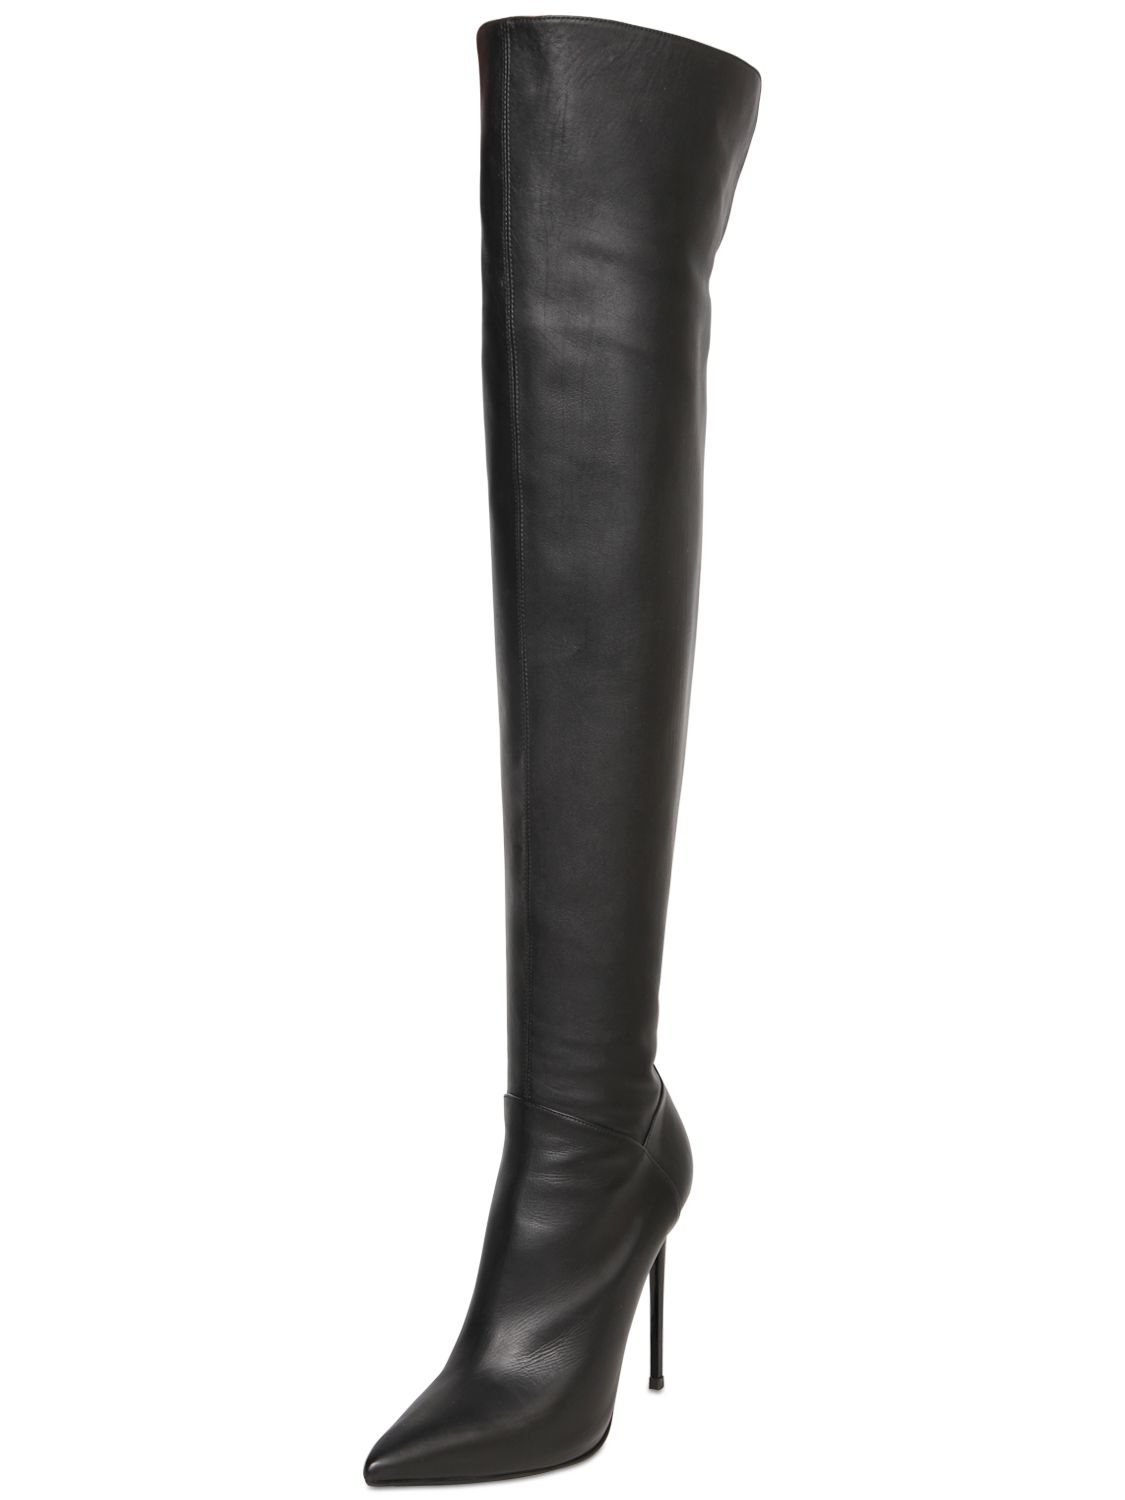 Le Silla Boots Lyst Le Silla 110mm Over The Knee Leather Boots In Black